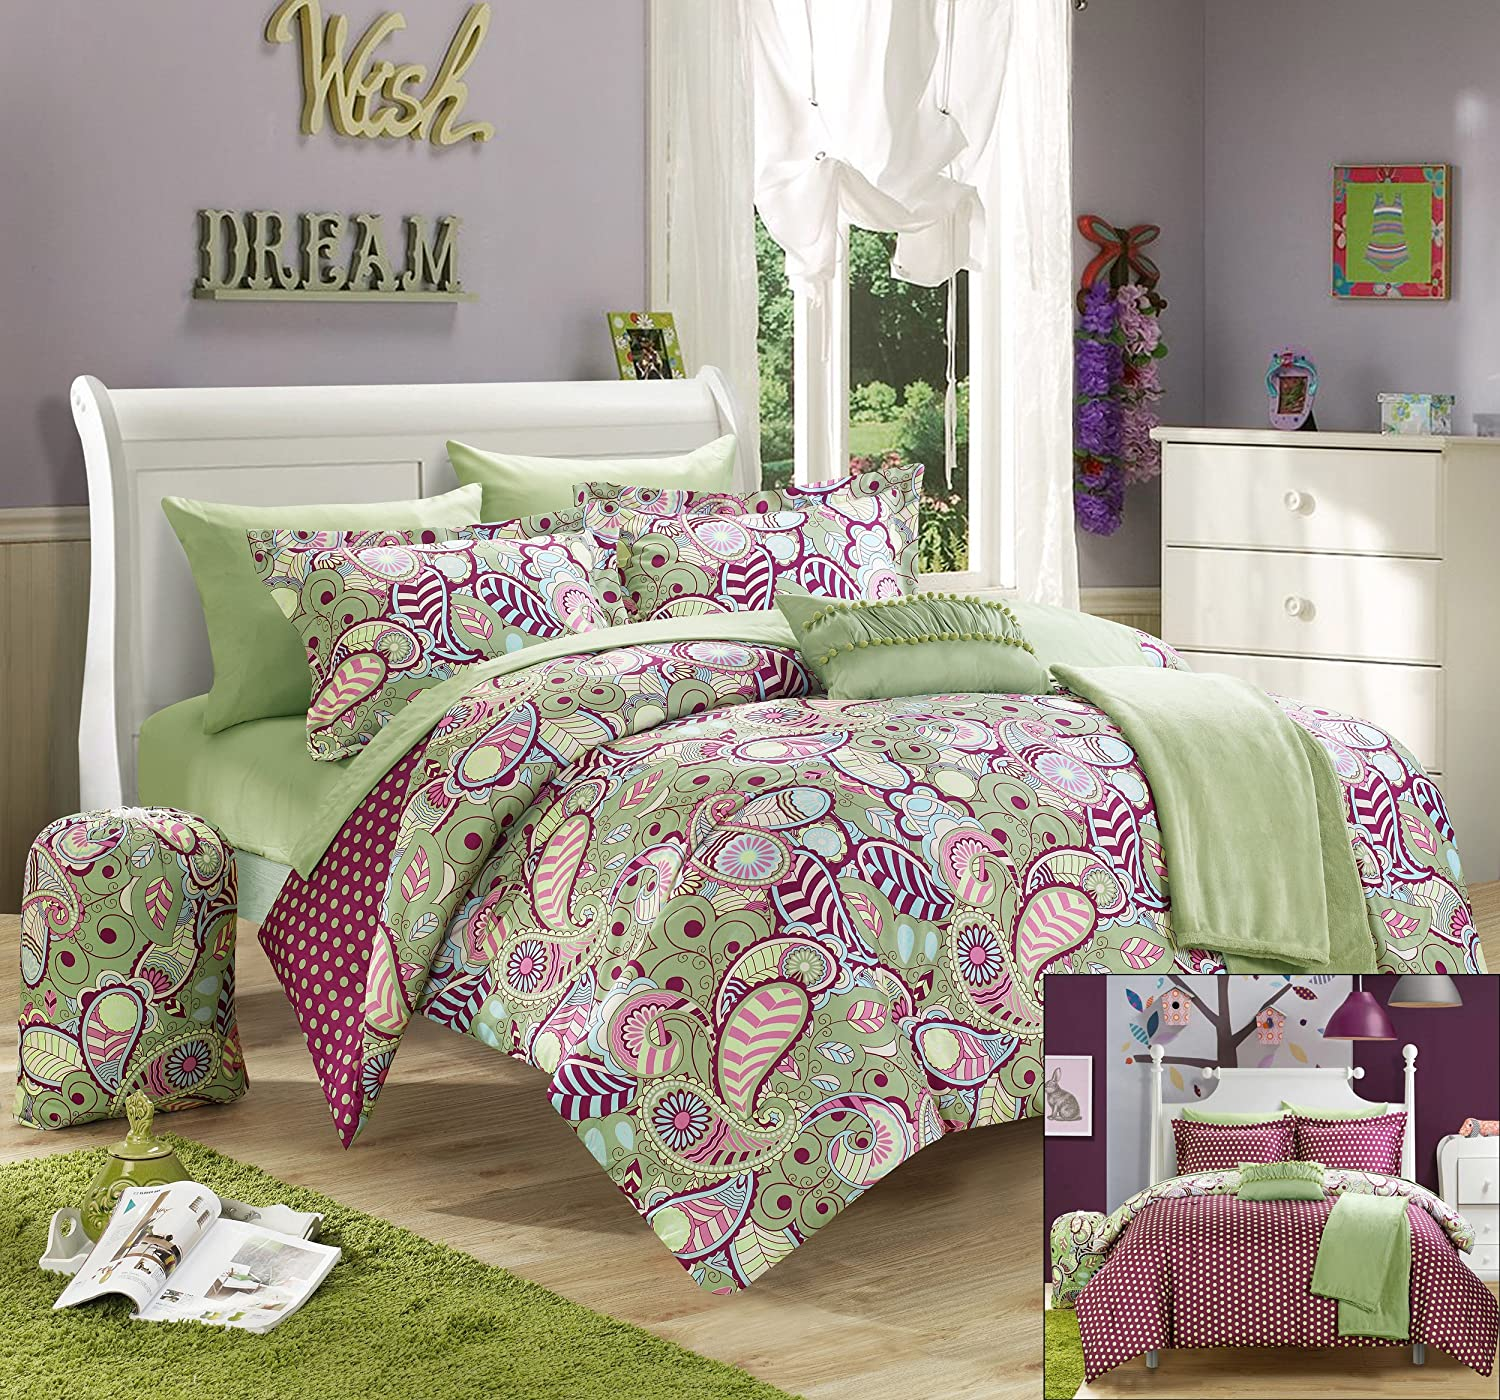 Chic Home 8 Piece Princess Paisley and Polka Dot Printed Reversible Comforter